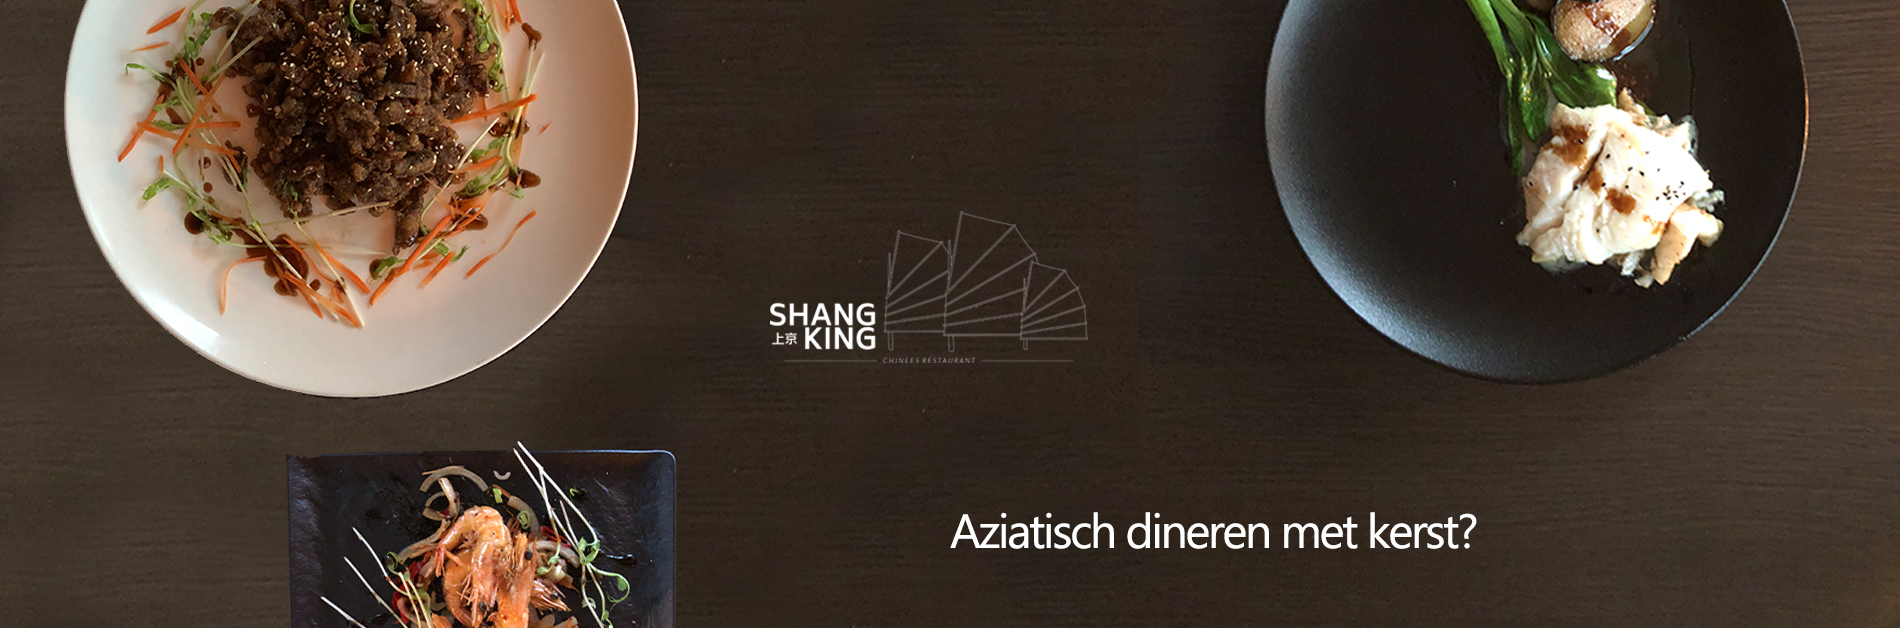 Shang King | Restaurant